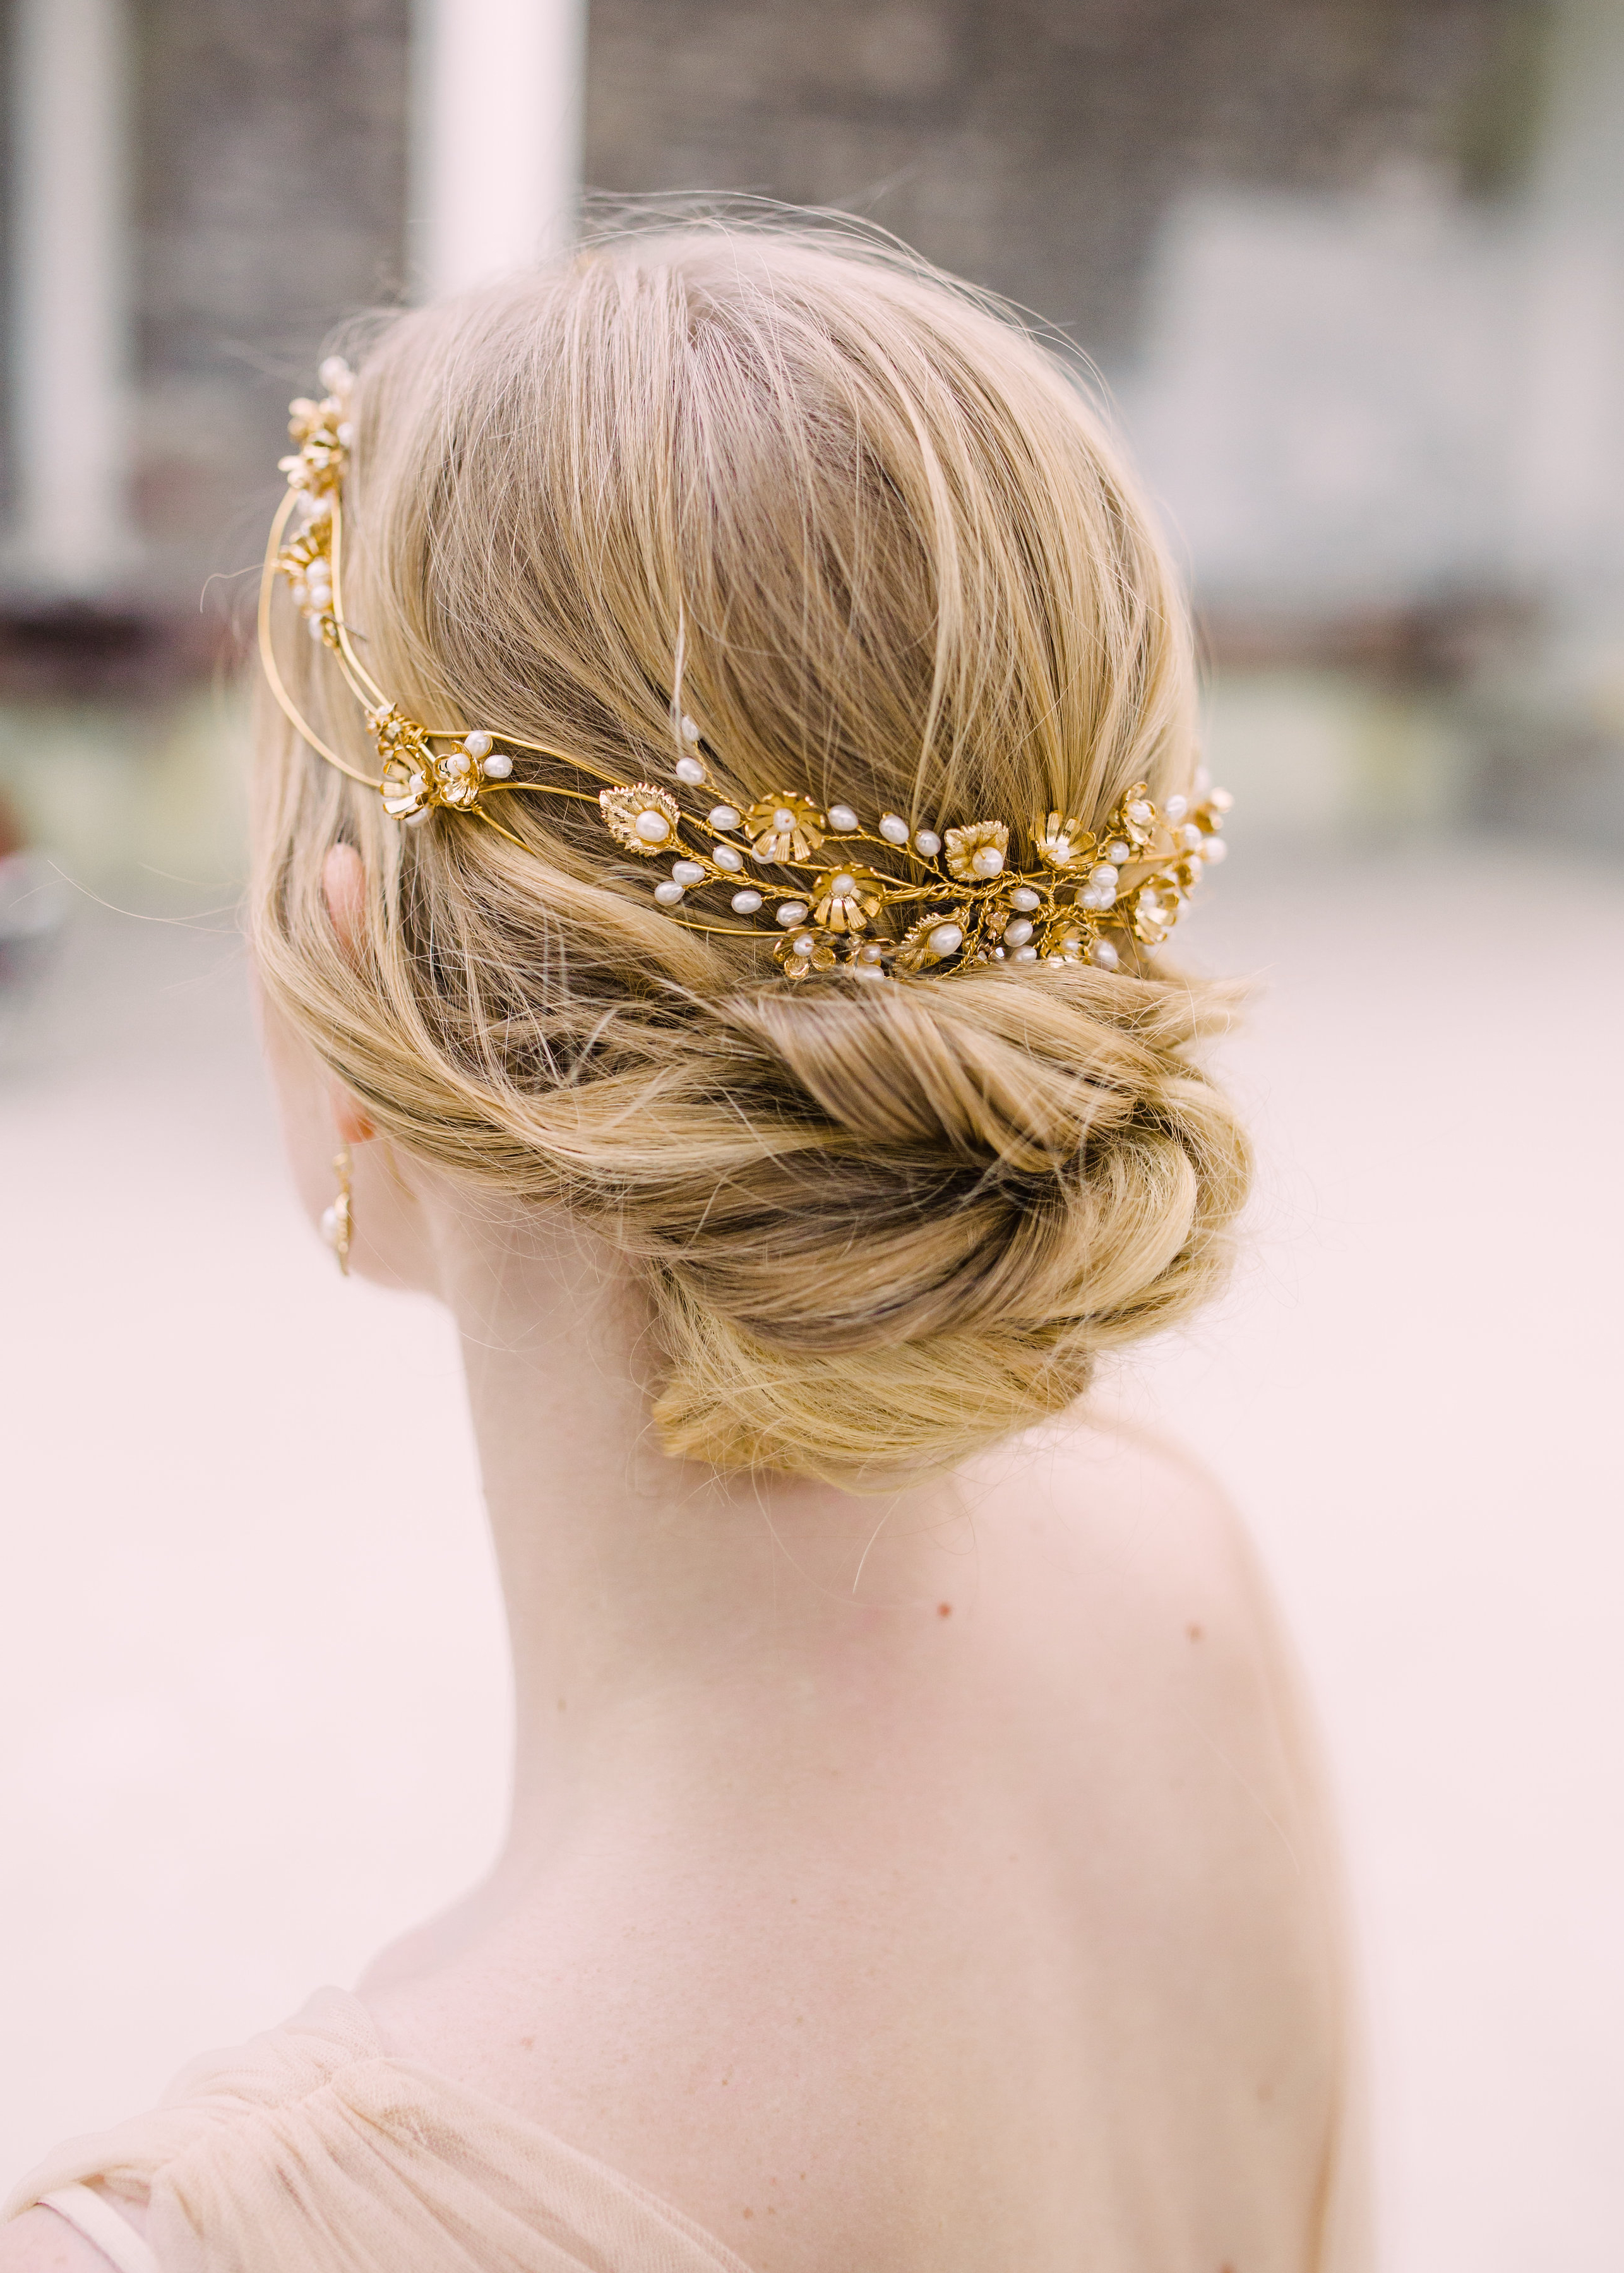 Bridal Hair Accessories: Accessorise Your Wedding Hairstyle – Hair Within Favorite Embellished Twisted Bun For Brides (View 8 of 20)